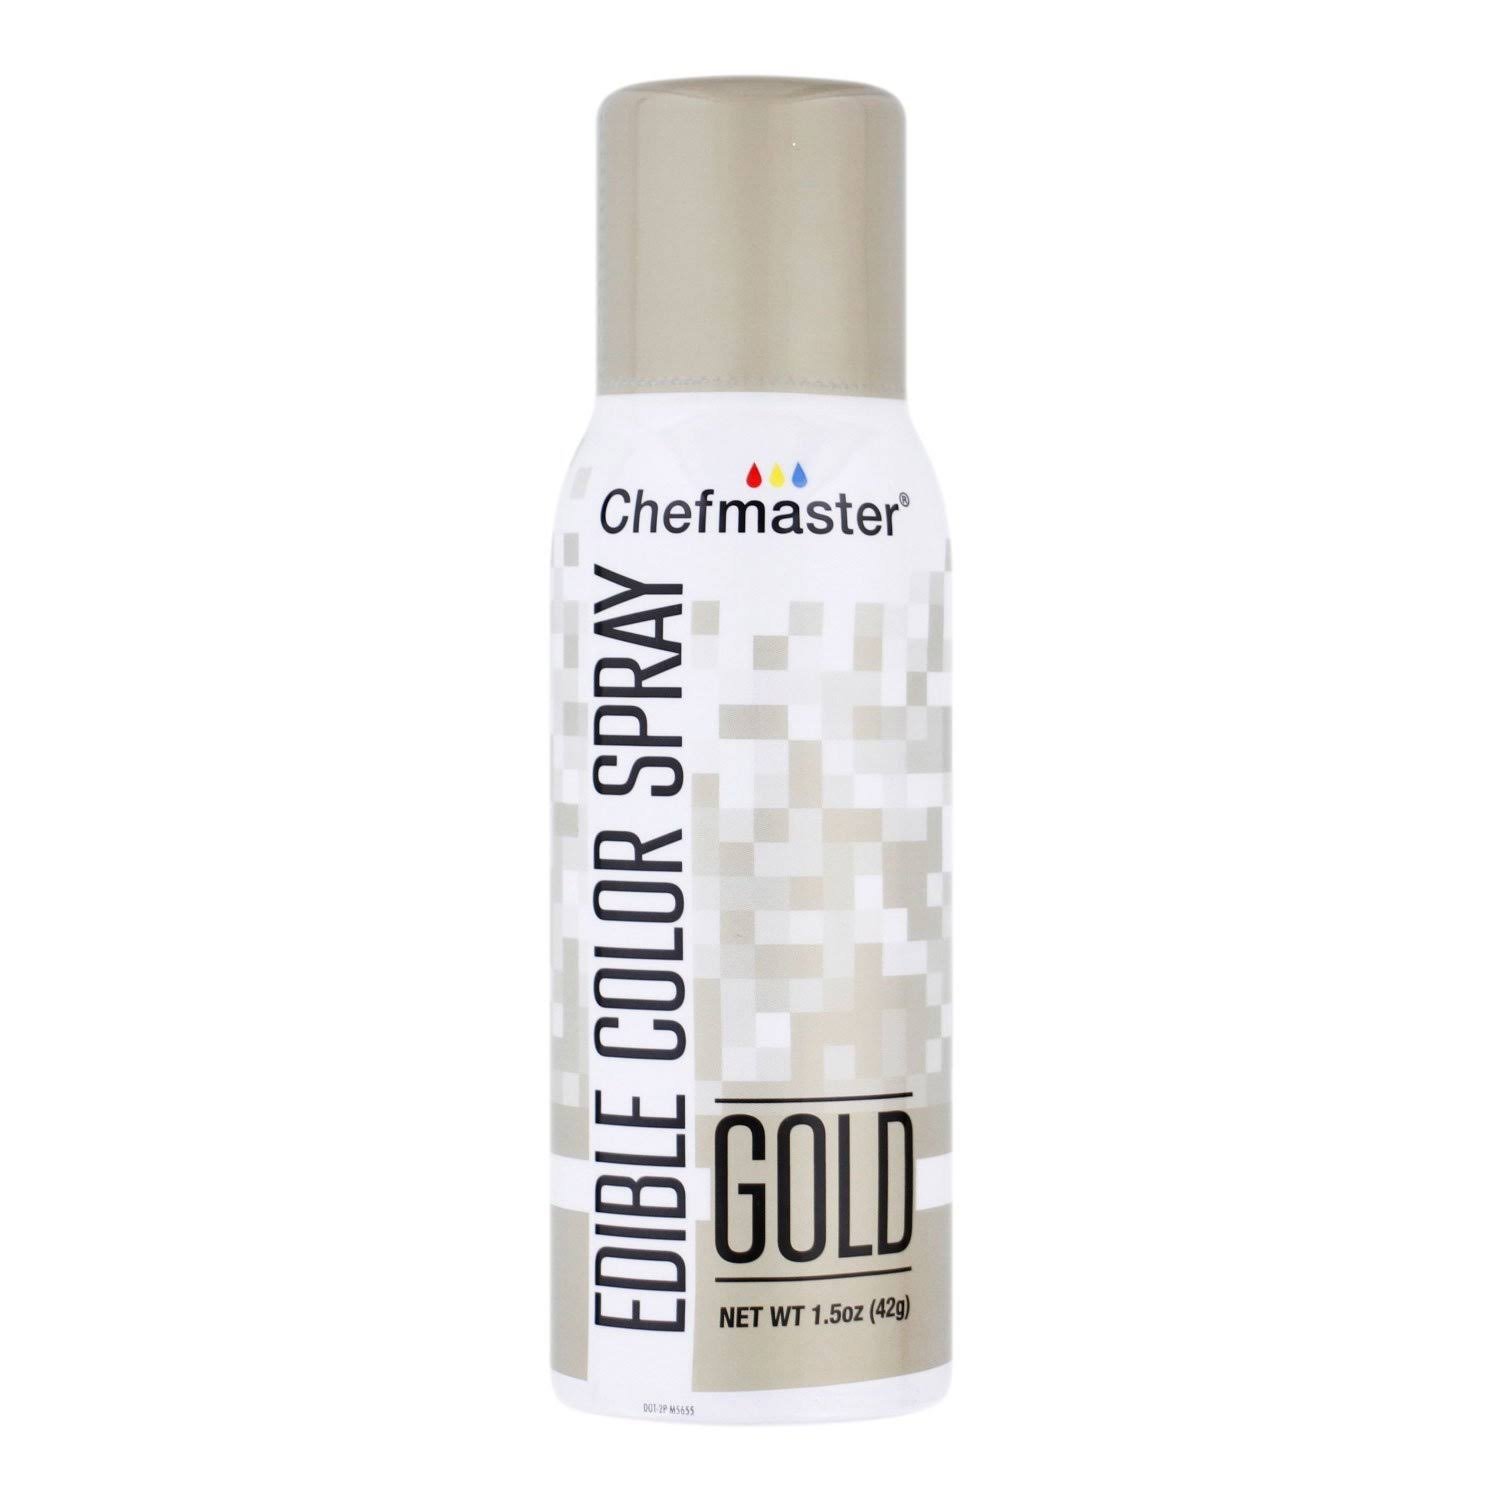 Chefmaster Edible Spray Cake Decorating Spray - Mettalic Gold, 1.5oz